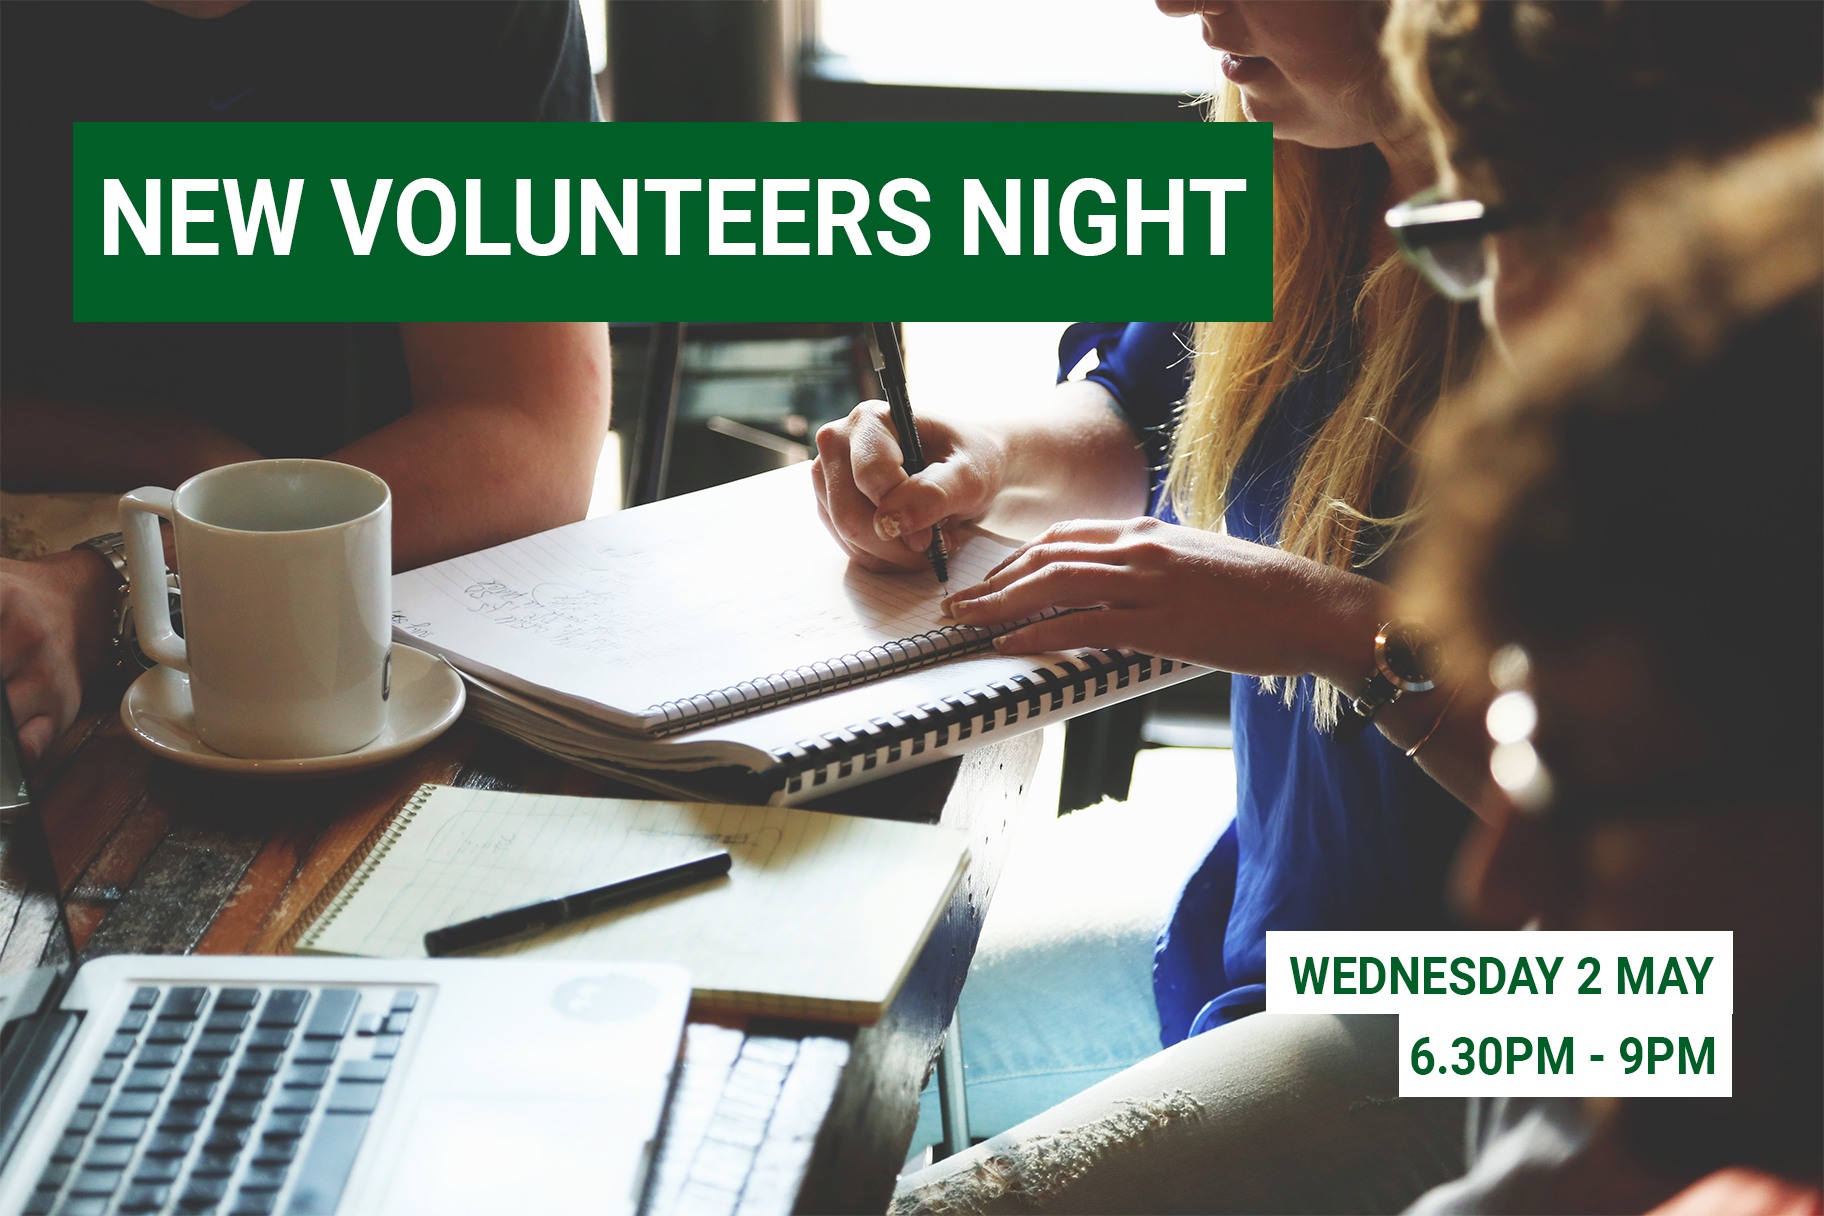 New Volunteer Night